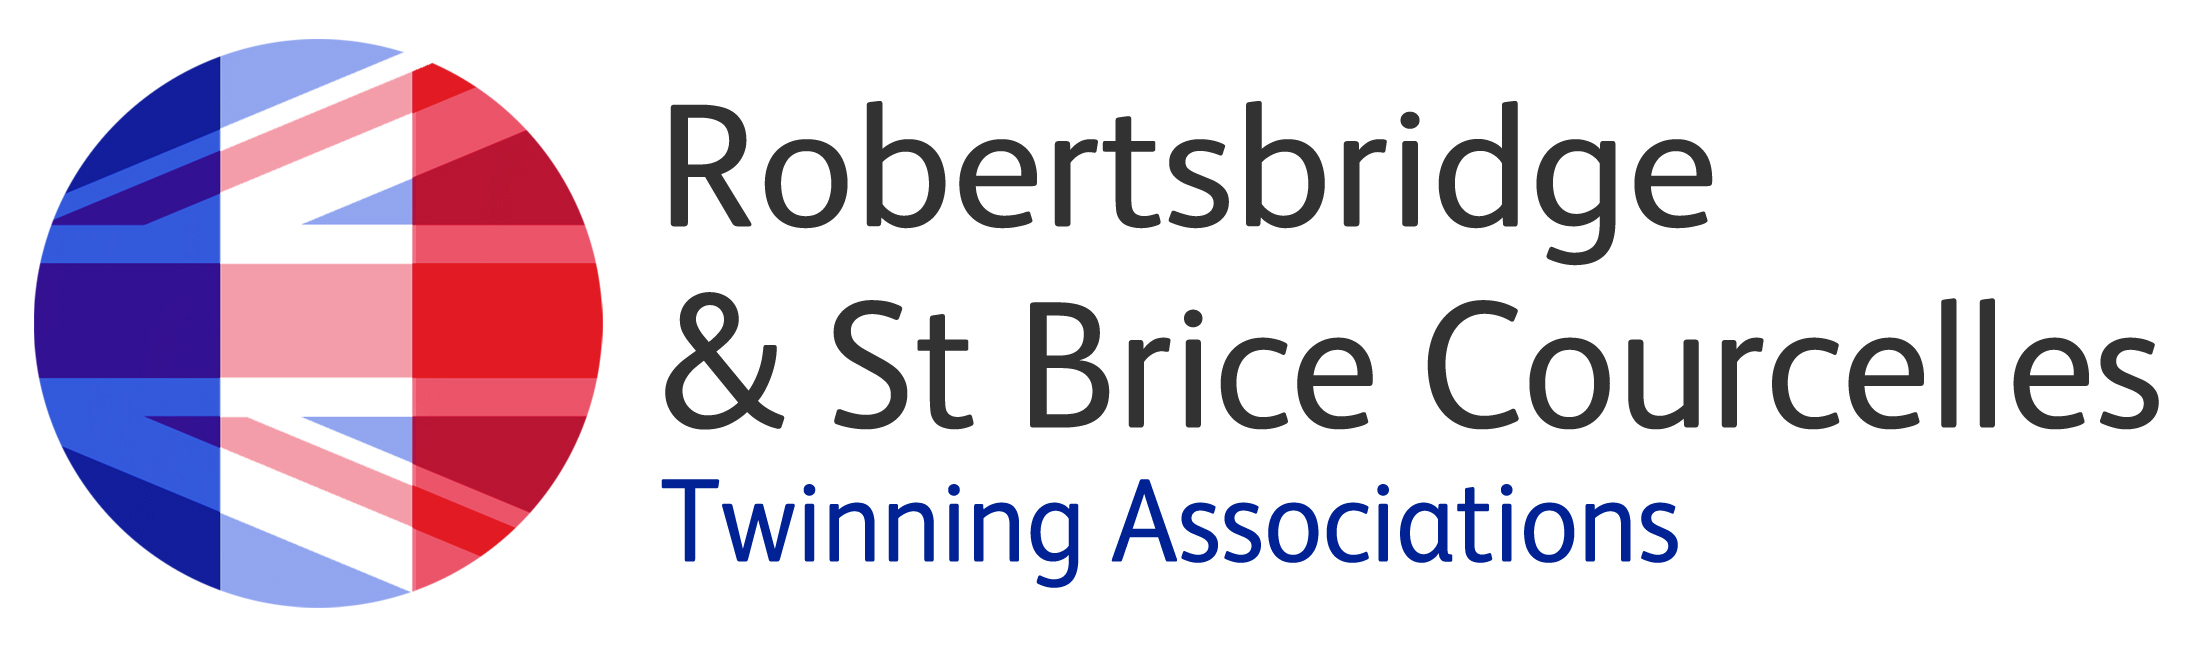 Robertsbridge & St Brice-Courcelles Twinning Associations